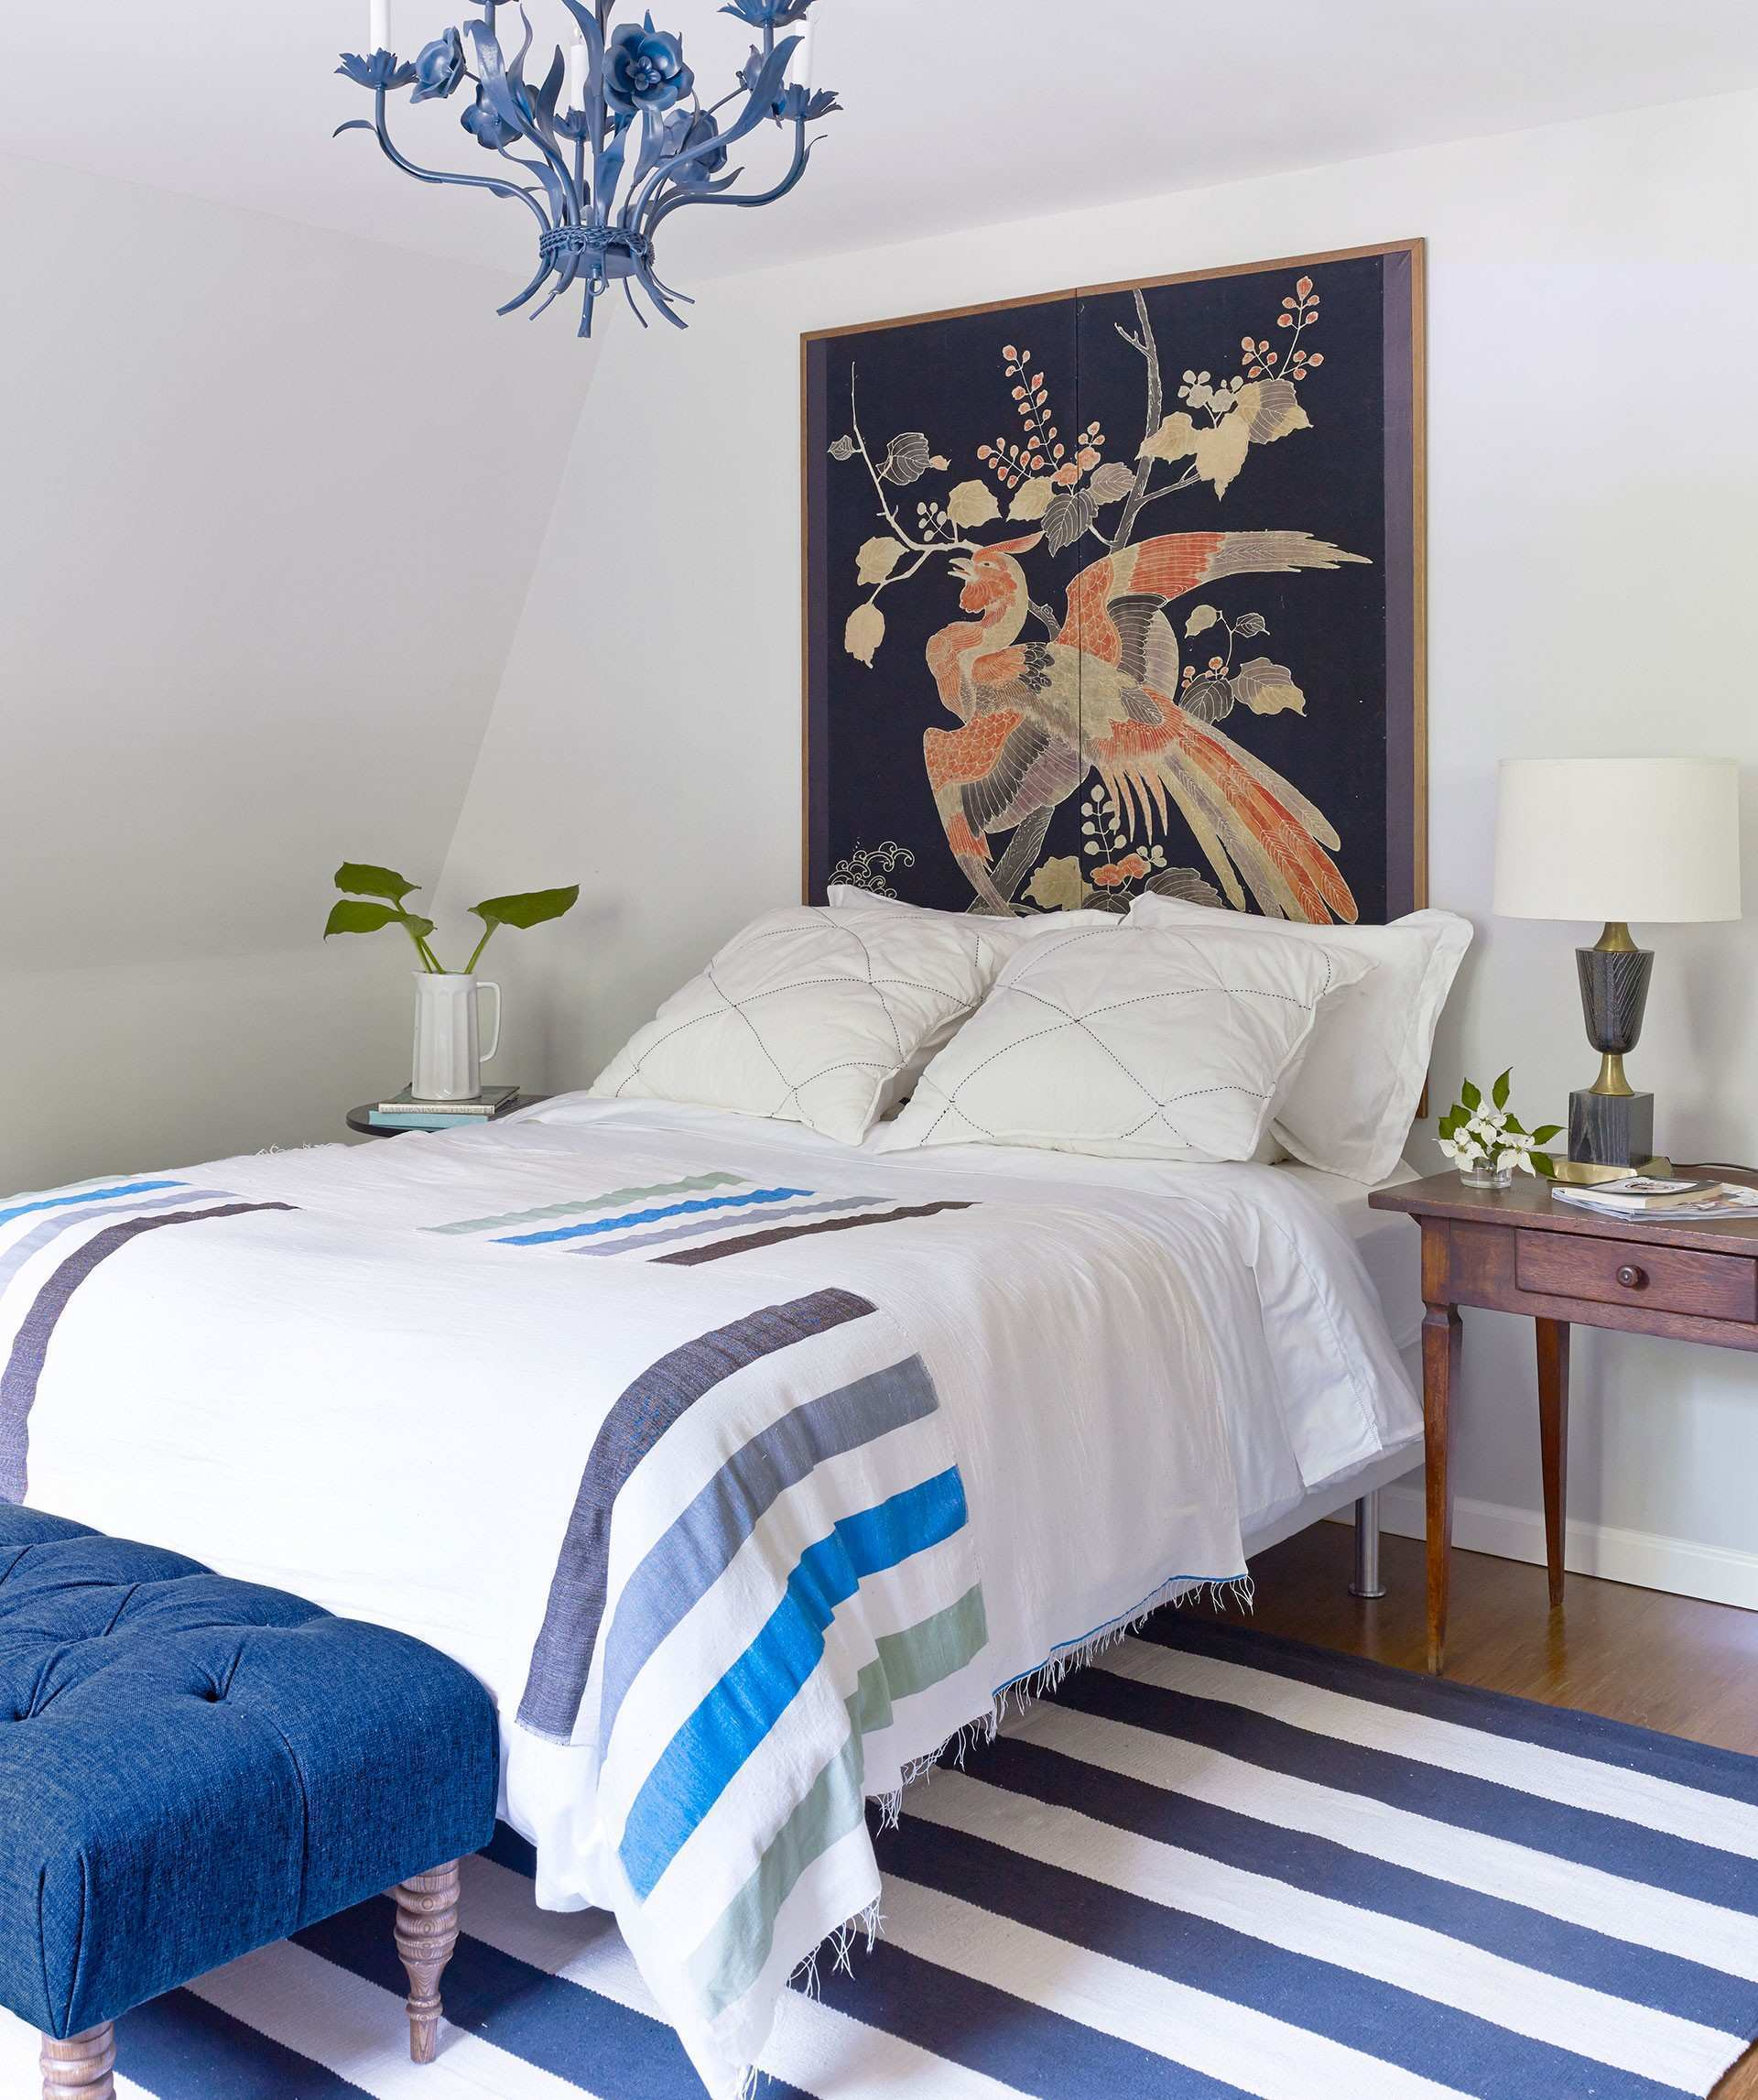 Big Wall Posters For Bedroom Home Interior